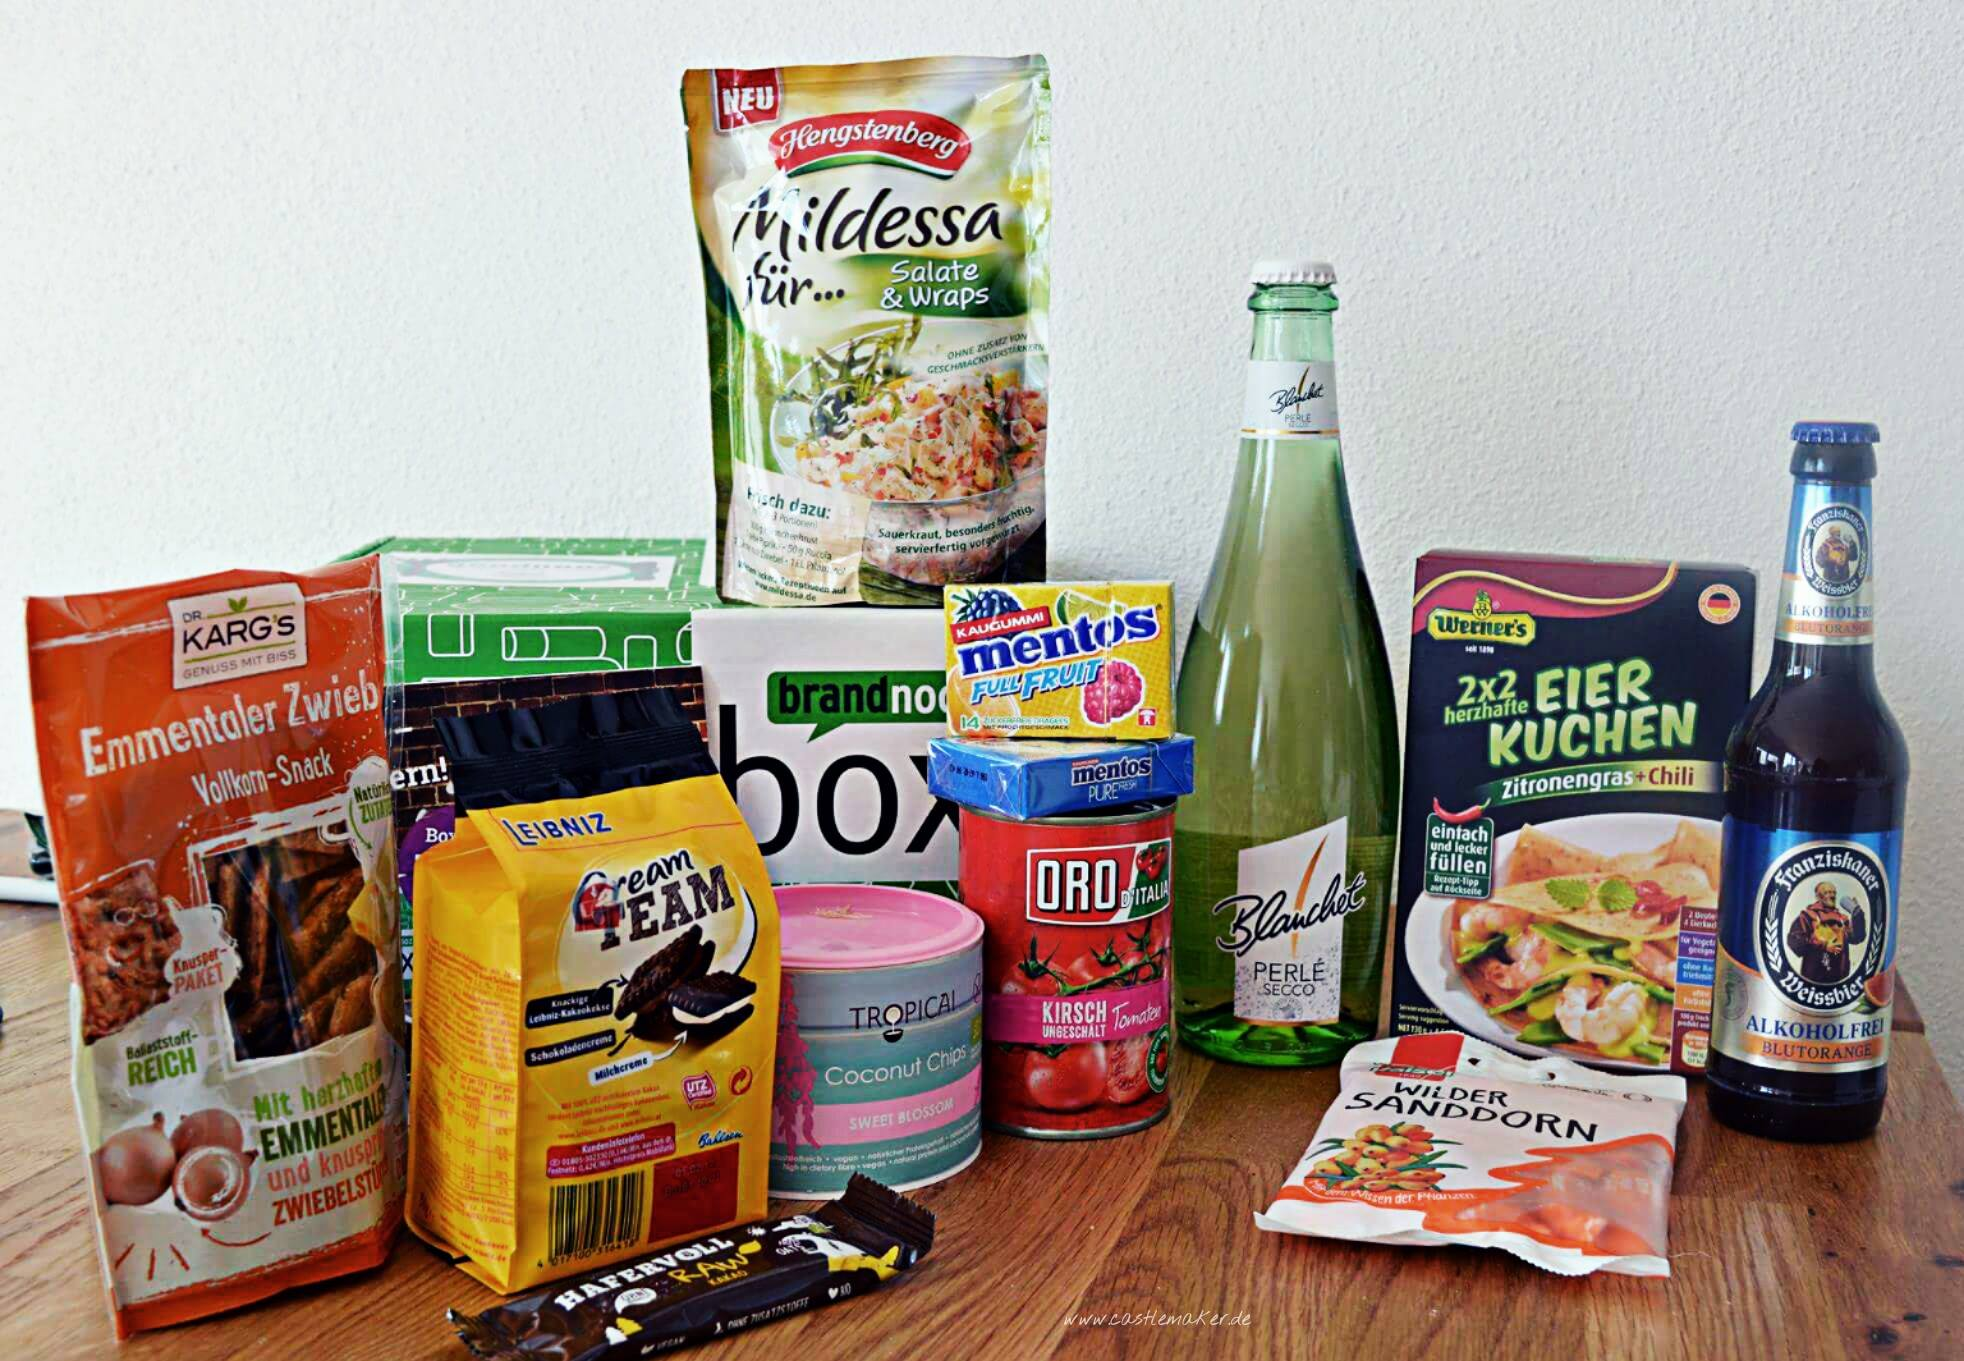 brandnooz box juni goodnoozbox lebensmittelbox castlemaker influencer foodblog 1